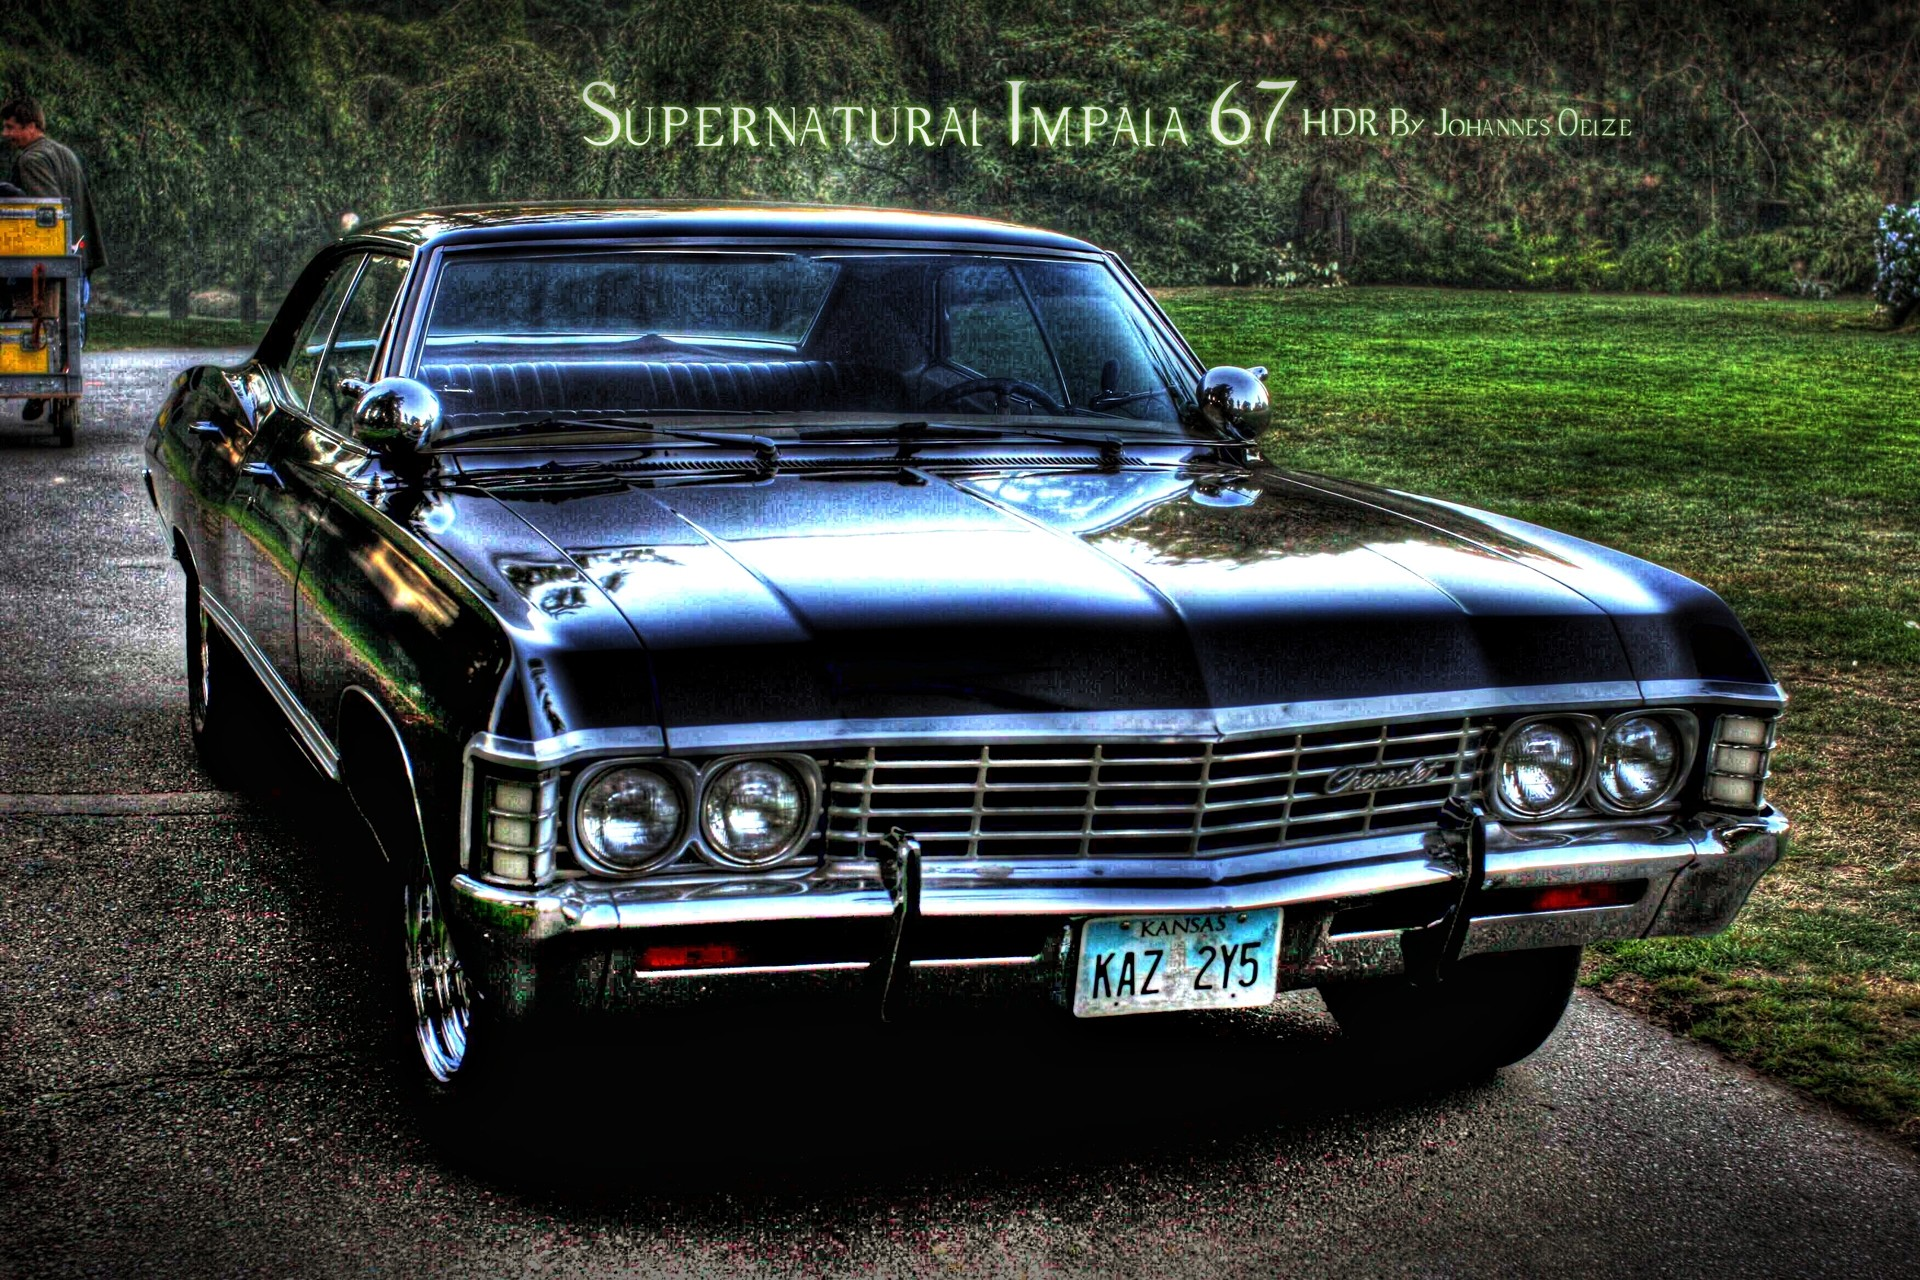 1967 Chevy Impala — If I'm going old school, this would be my car. Just  like the one in Supernatural.